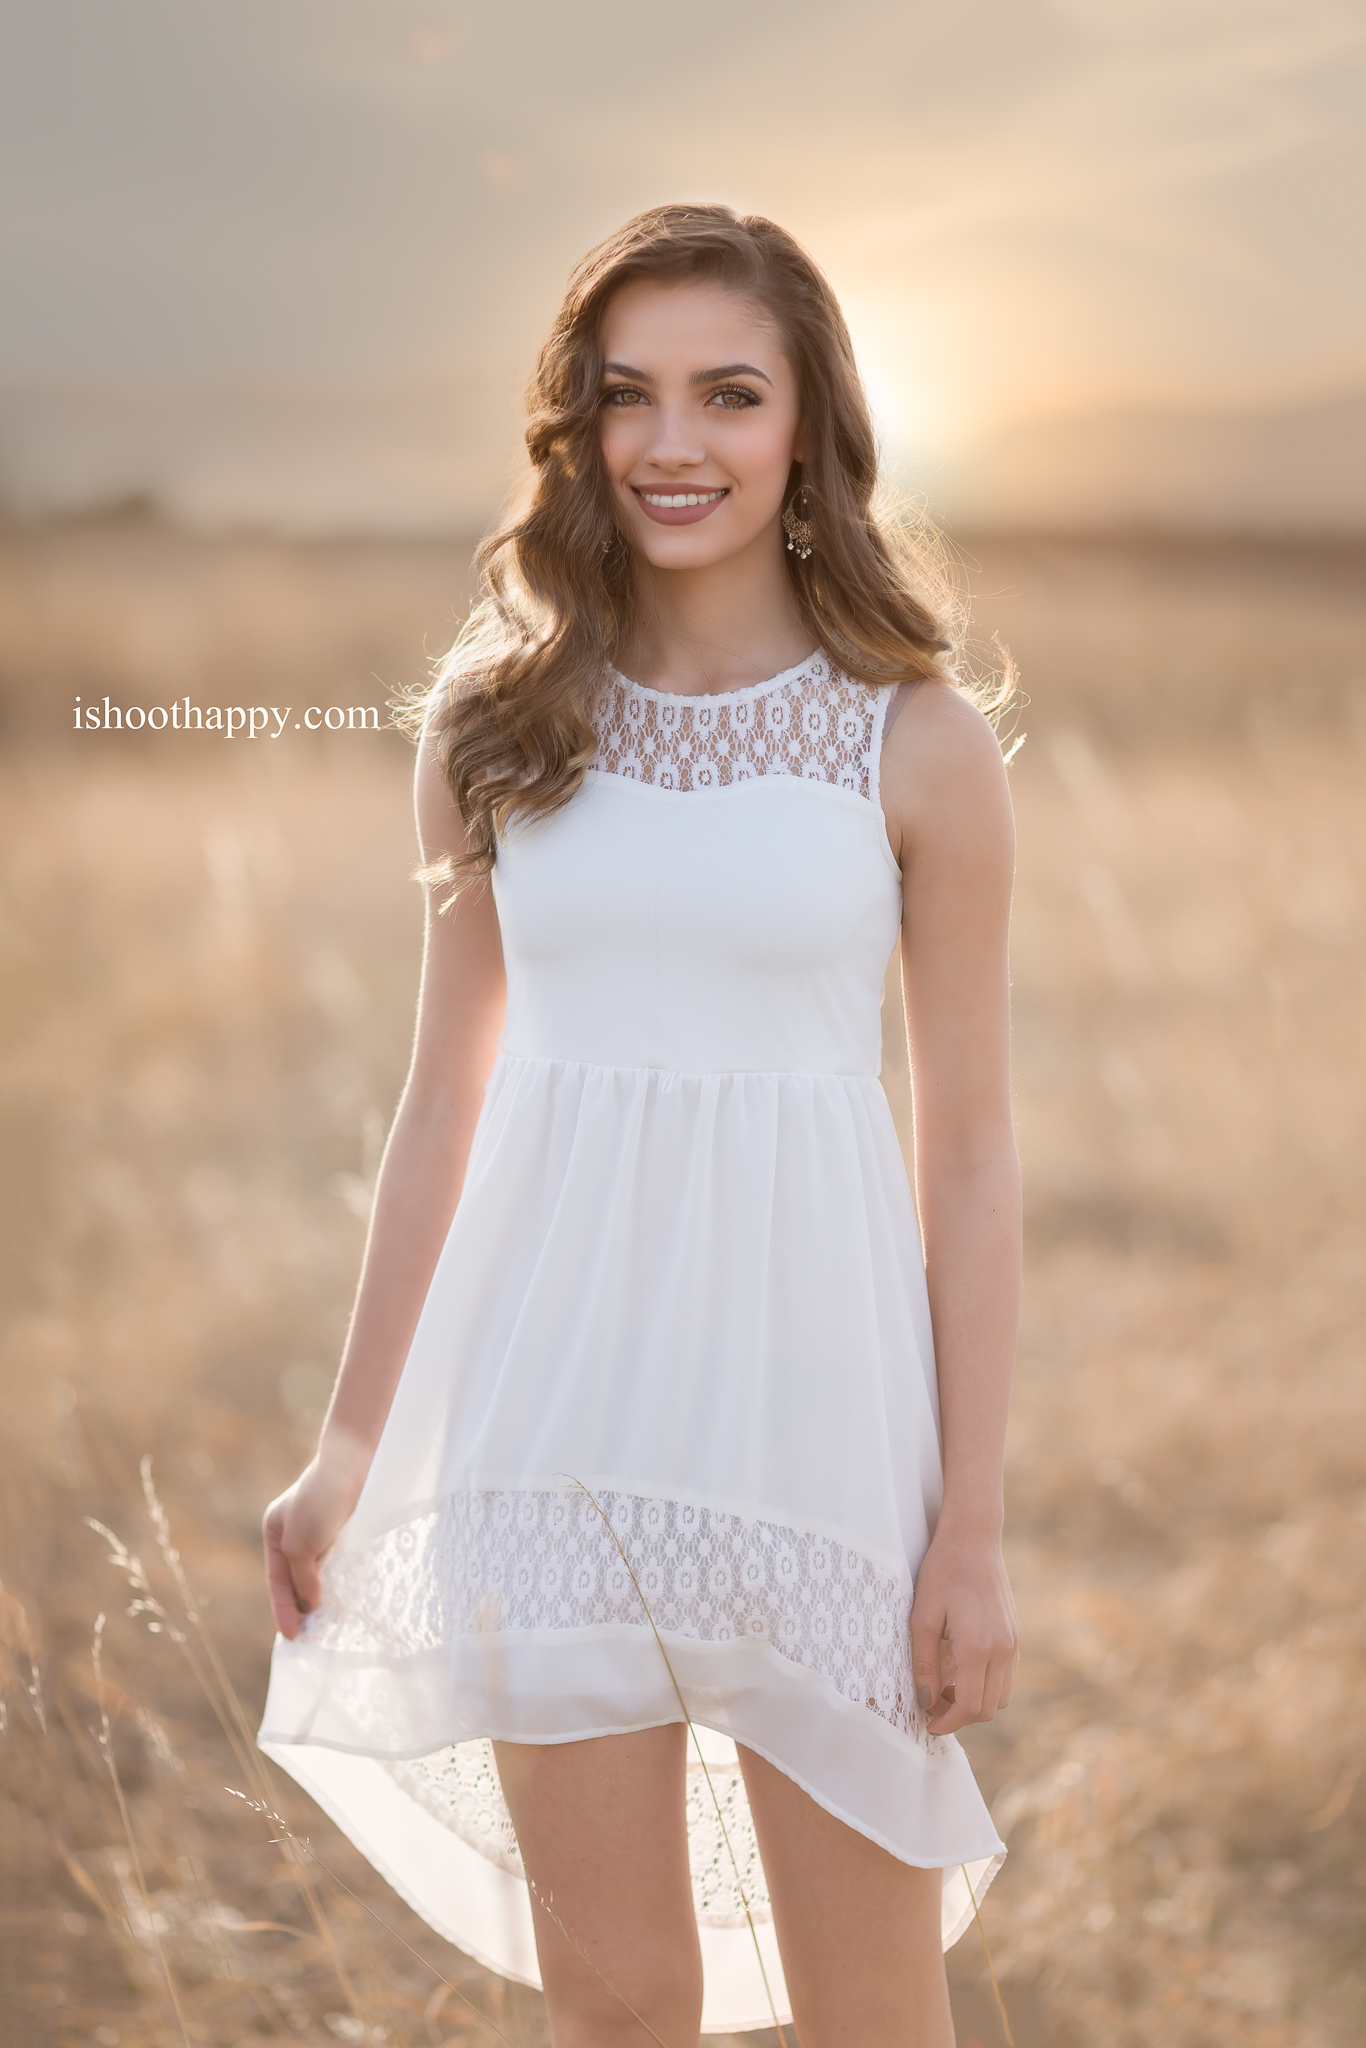 Denver senior photography, senior photos denver, best senior photographer denver, tween photography, colorado senior photographer, portrait photography, denver senior pictures, colorado senior photos